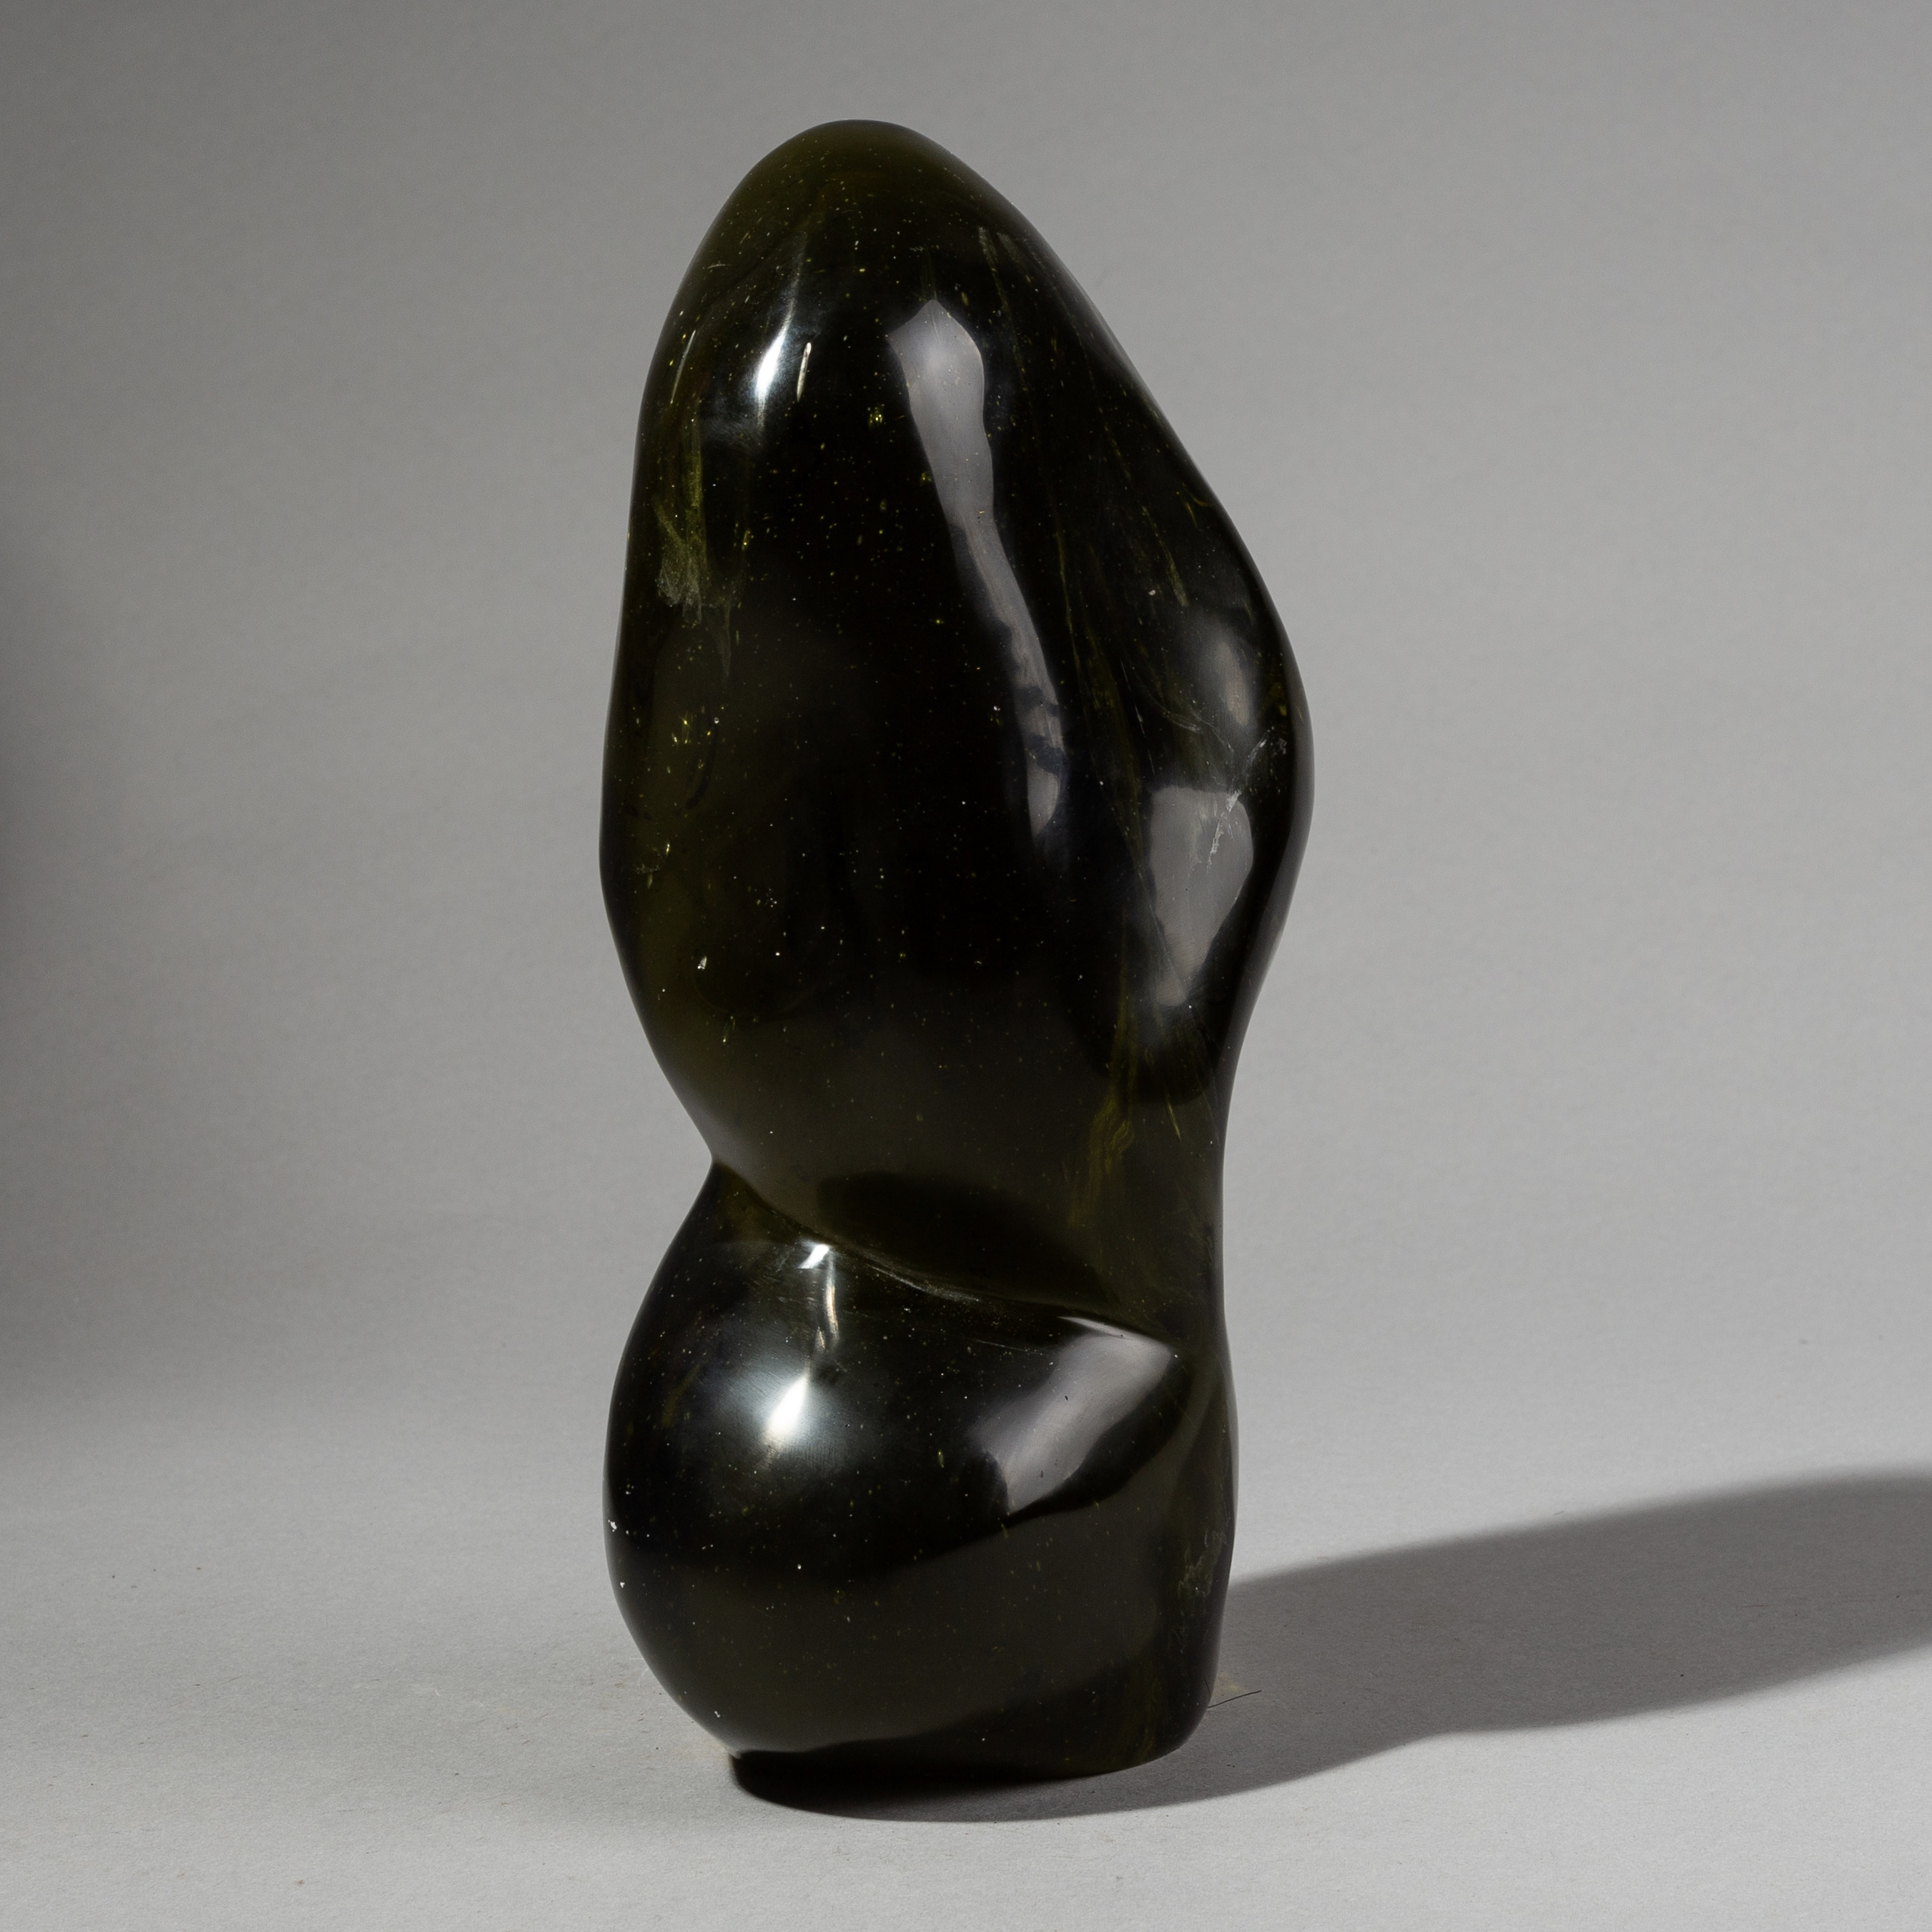 AN EVOCATIVE DARK GREEN MADAGASCAN GLASS SCULPTURE ( No 2240 )